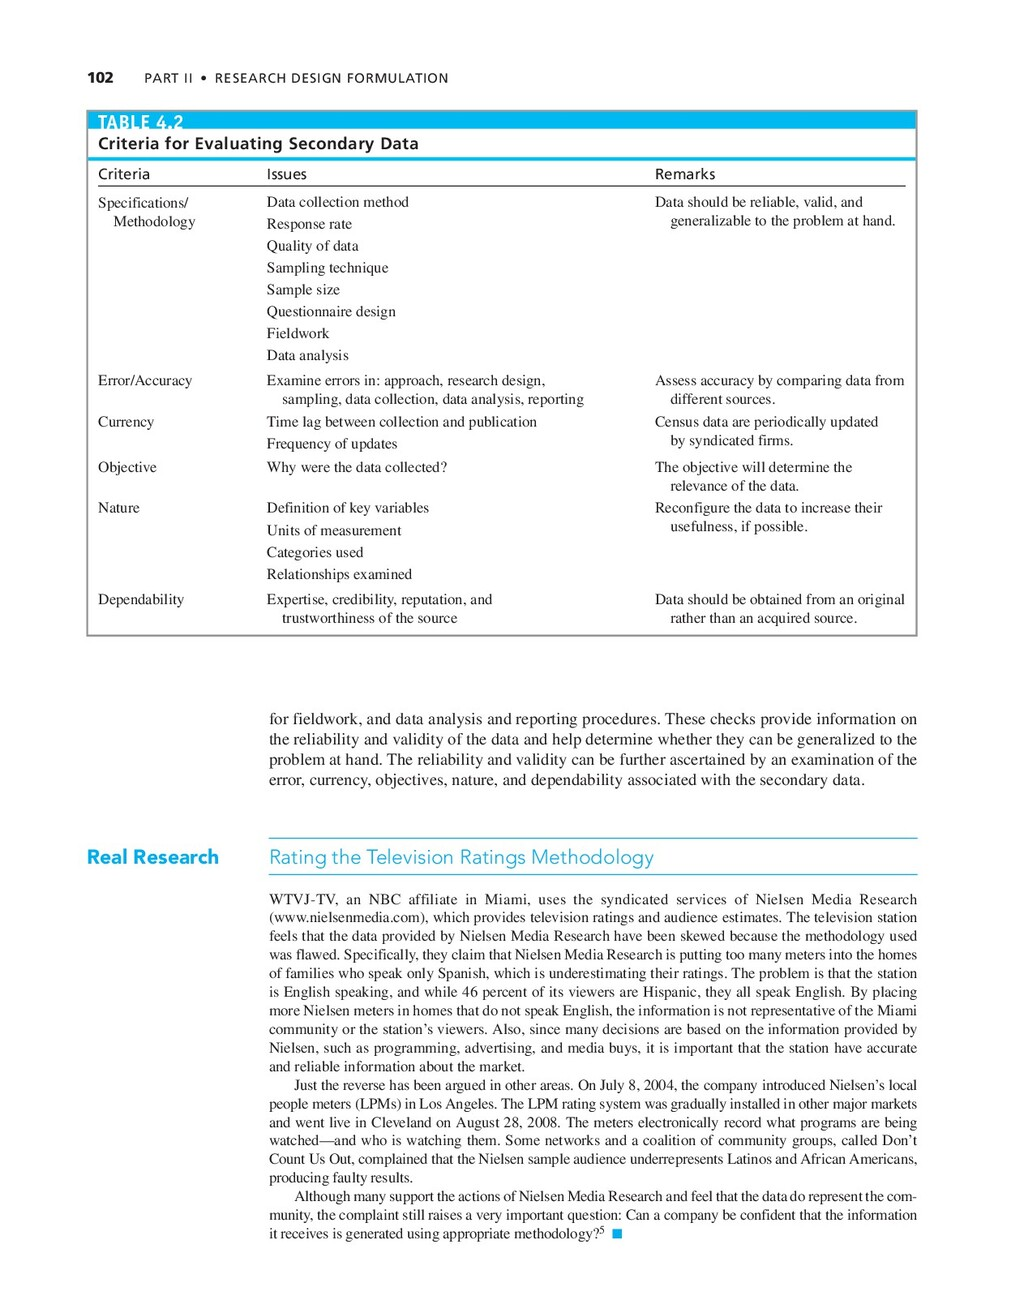 102 PART II • RESEARCH DESIGN FORMULATION TABLE...